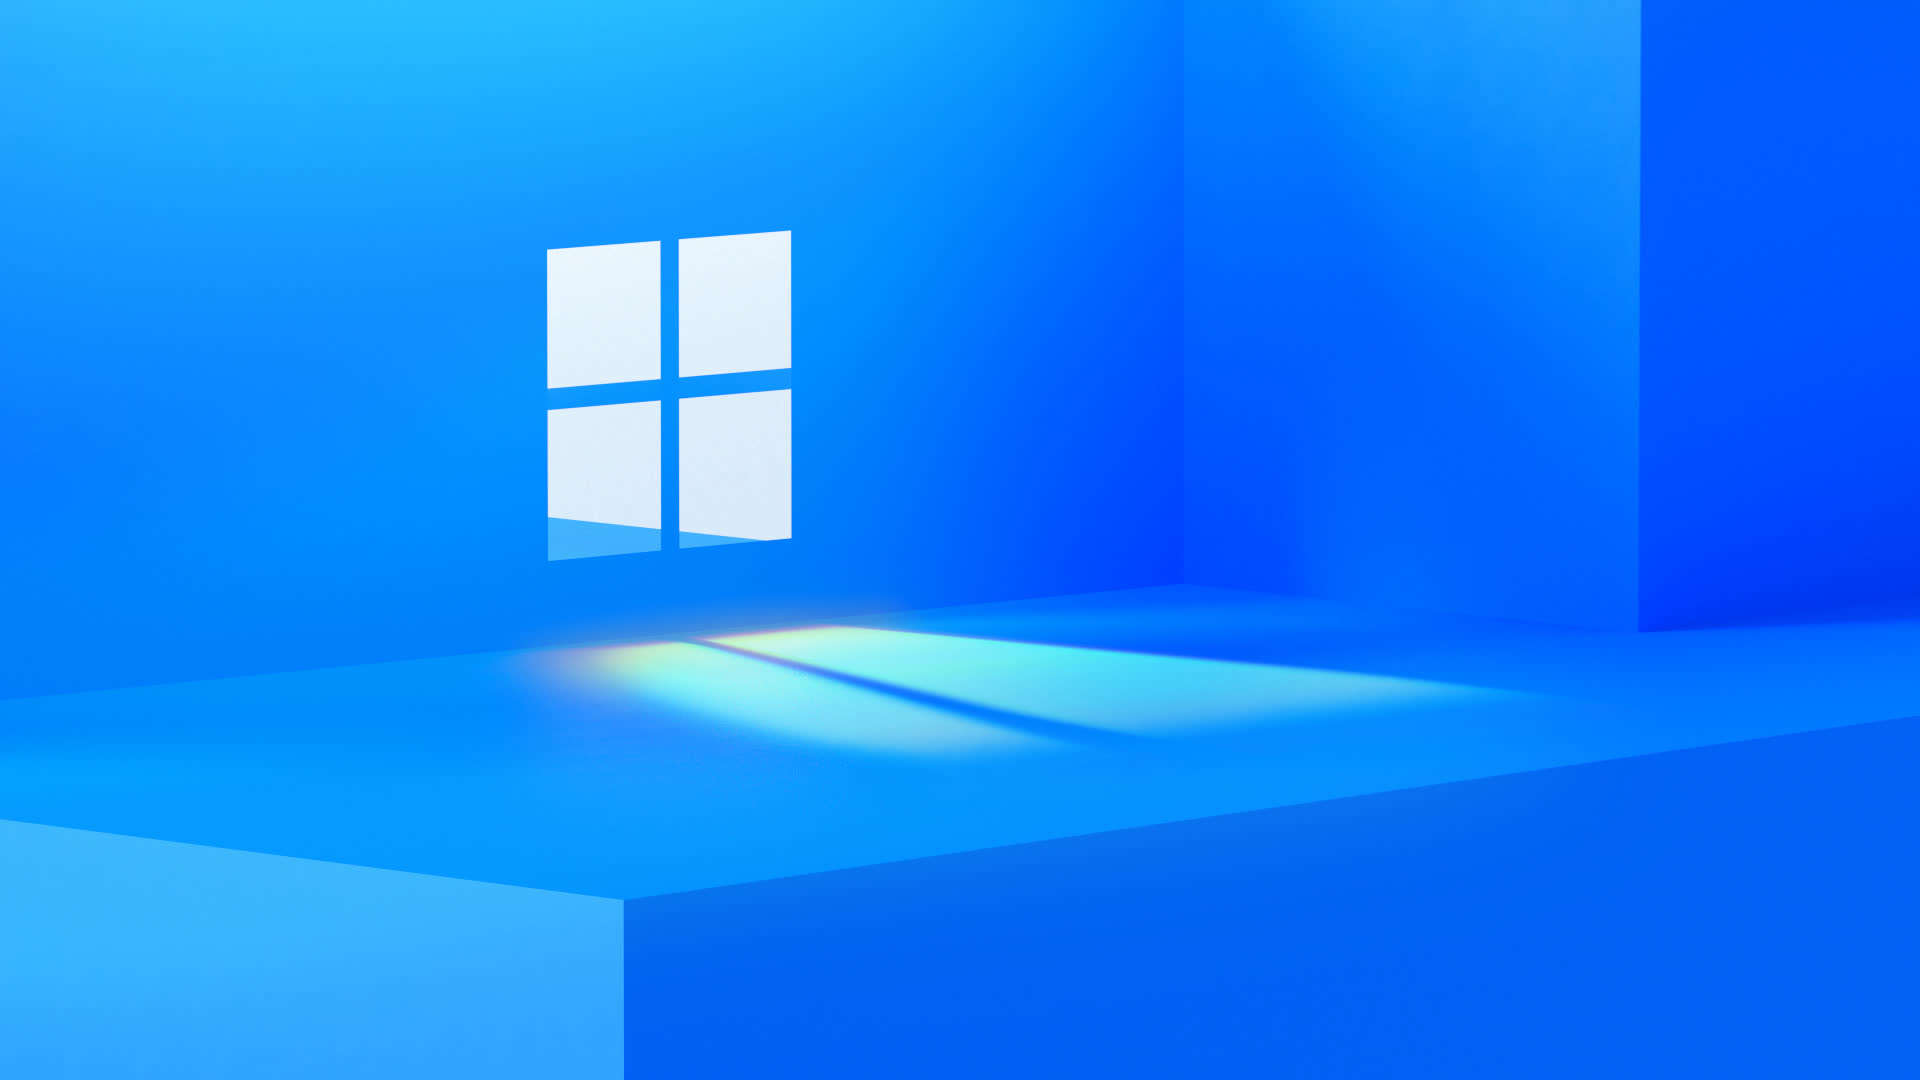 Microsoft is set to unveil what's next for Windows on June 24